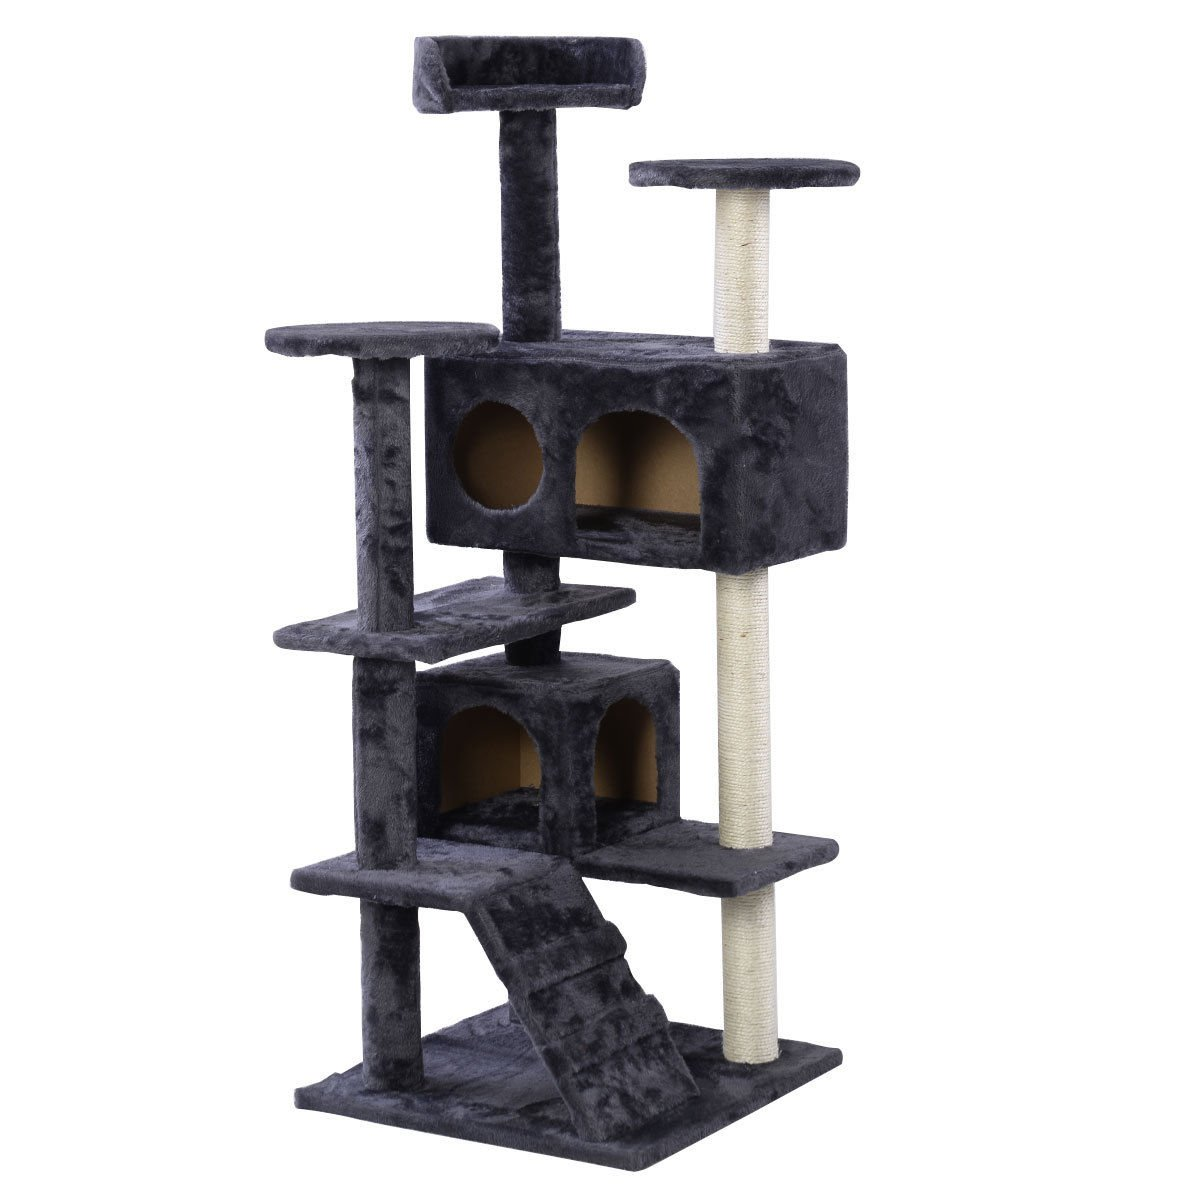 New Cat Tree Tower Condo Furniture Scratch Post Kitty Pet